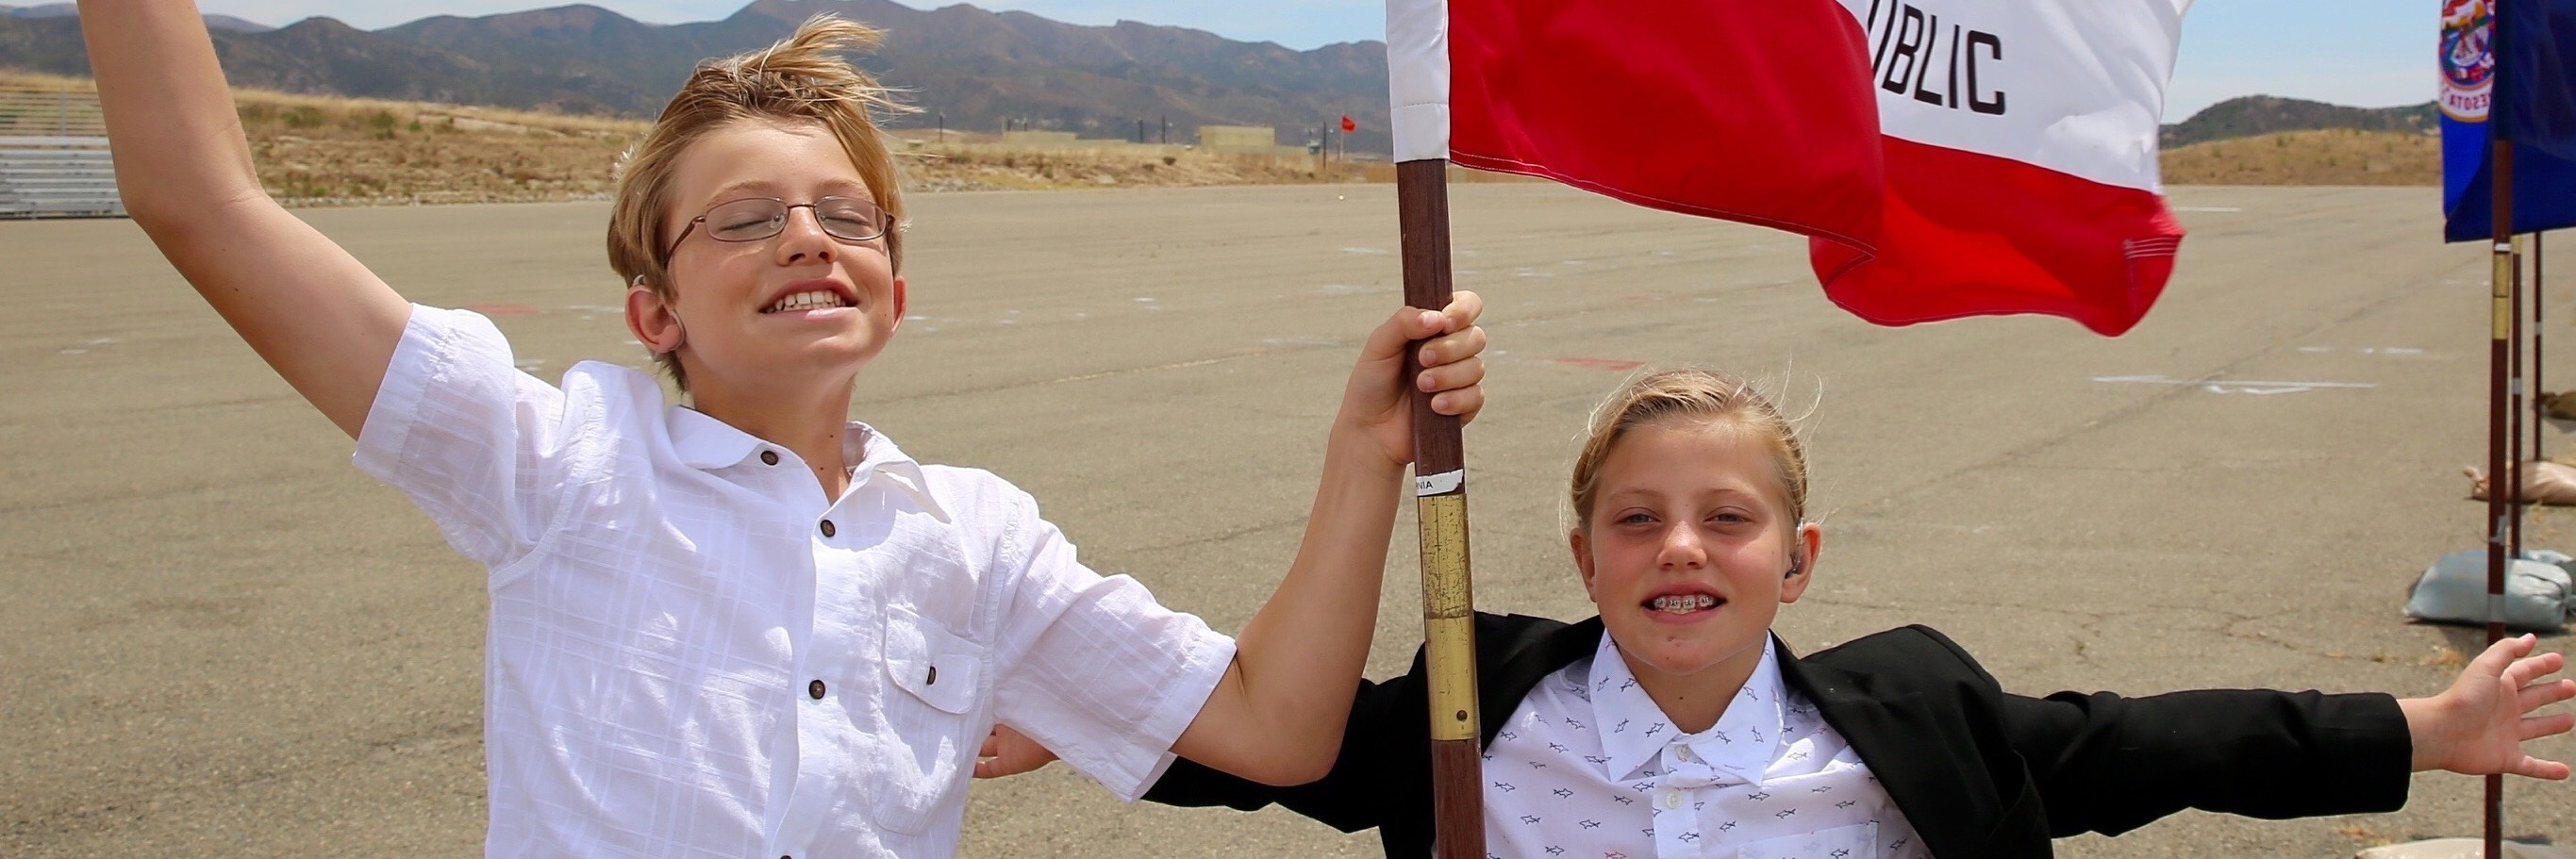 Two kids wearing white shirts and waving a flag.